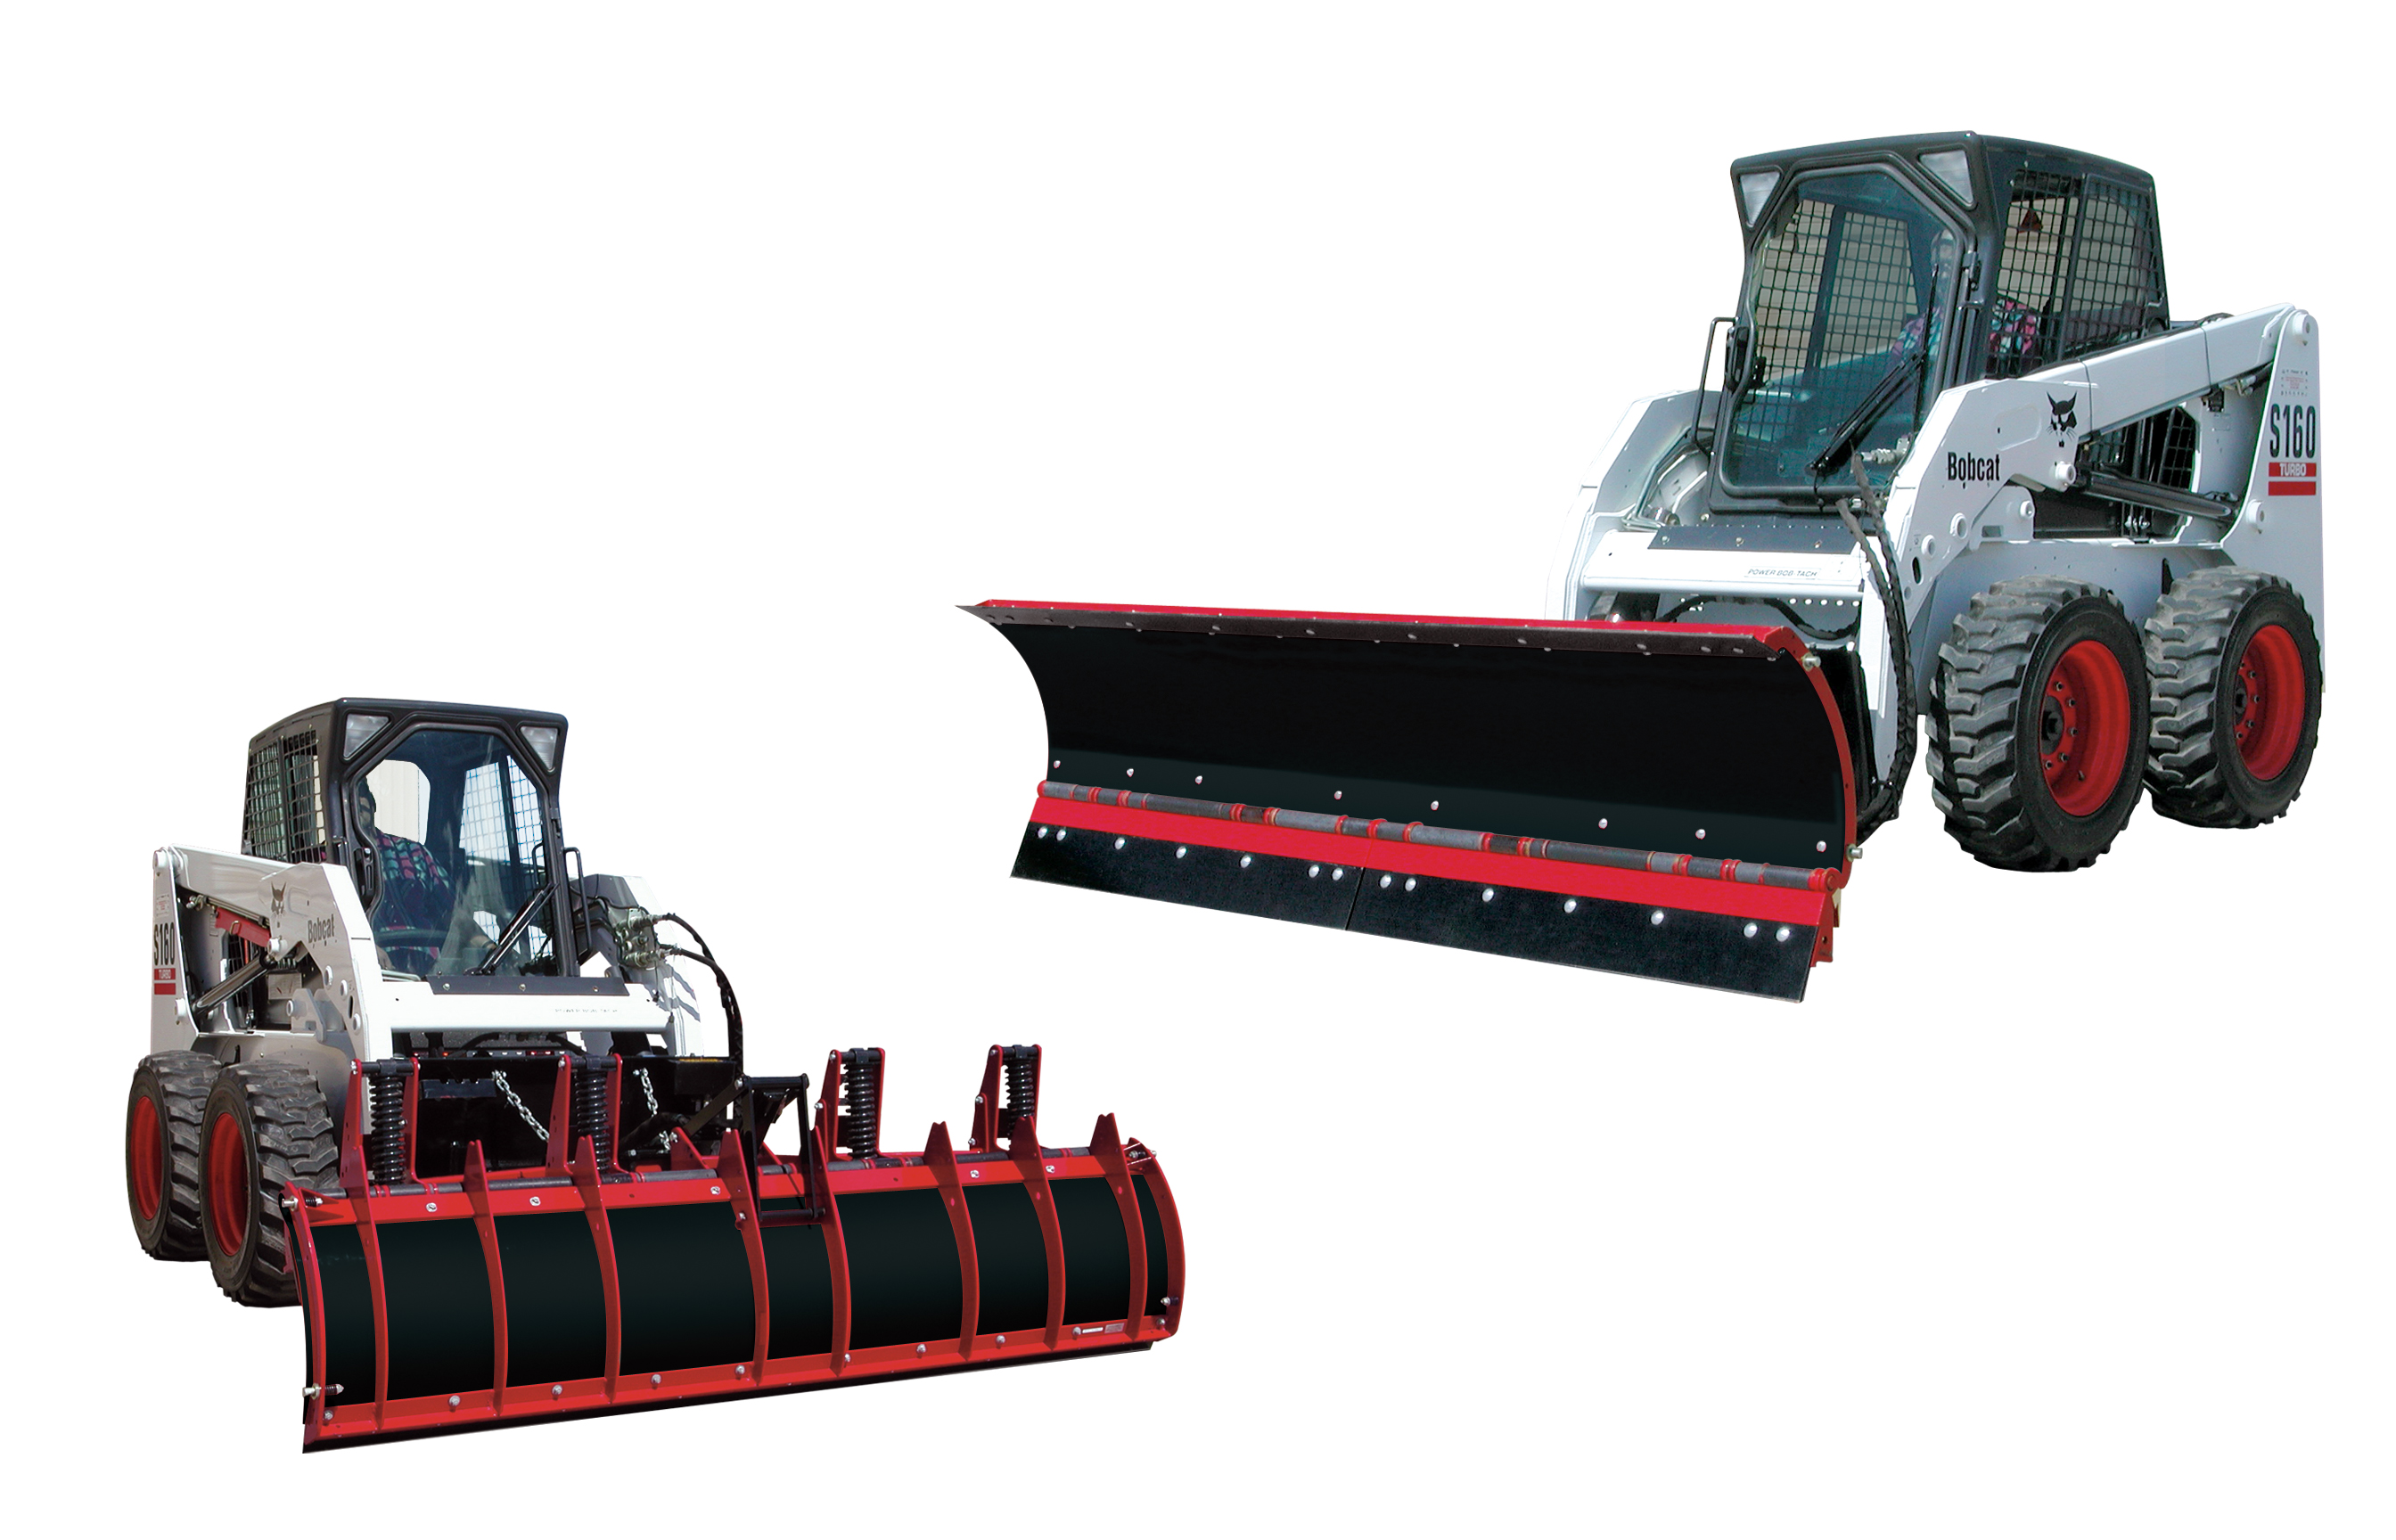 NEW Hiniker 8 C-Plow for Skid Steer with Trip Edge and crossover relief valve.